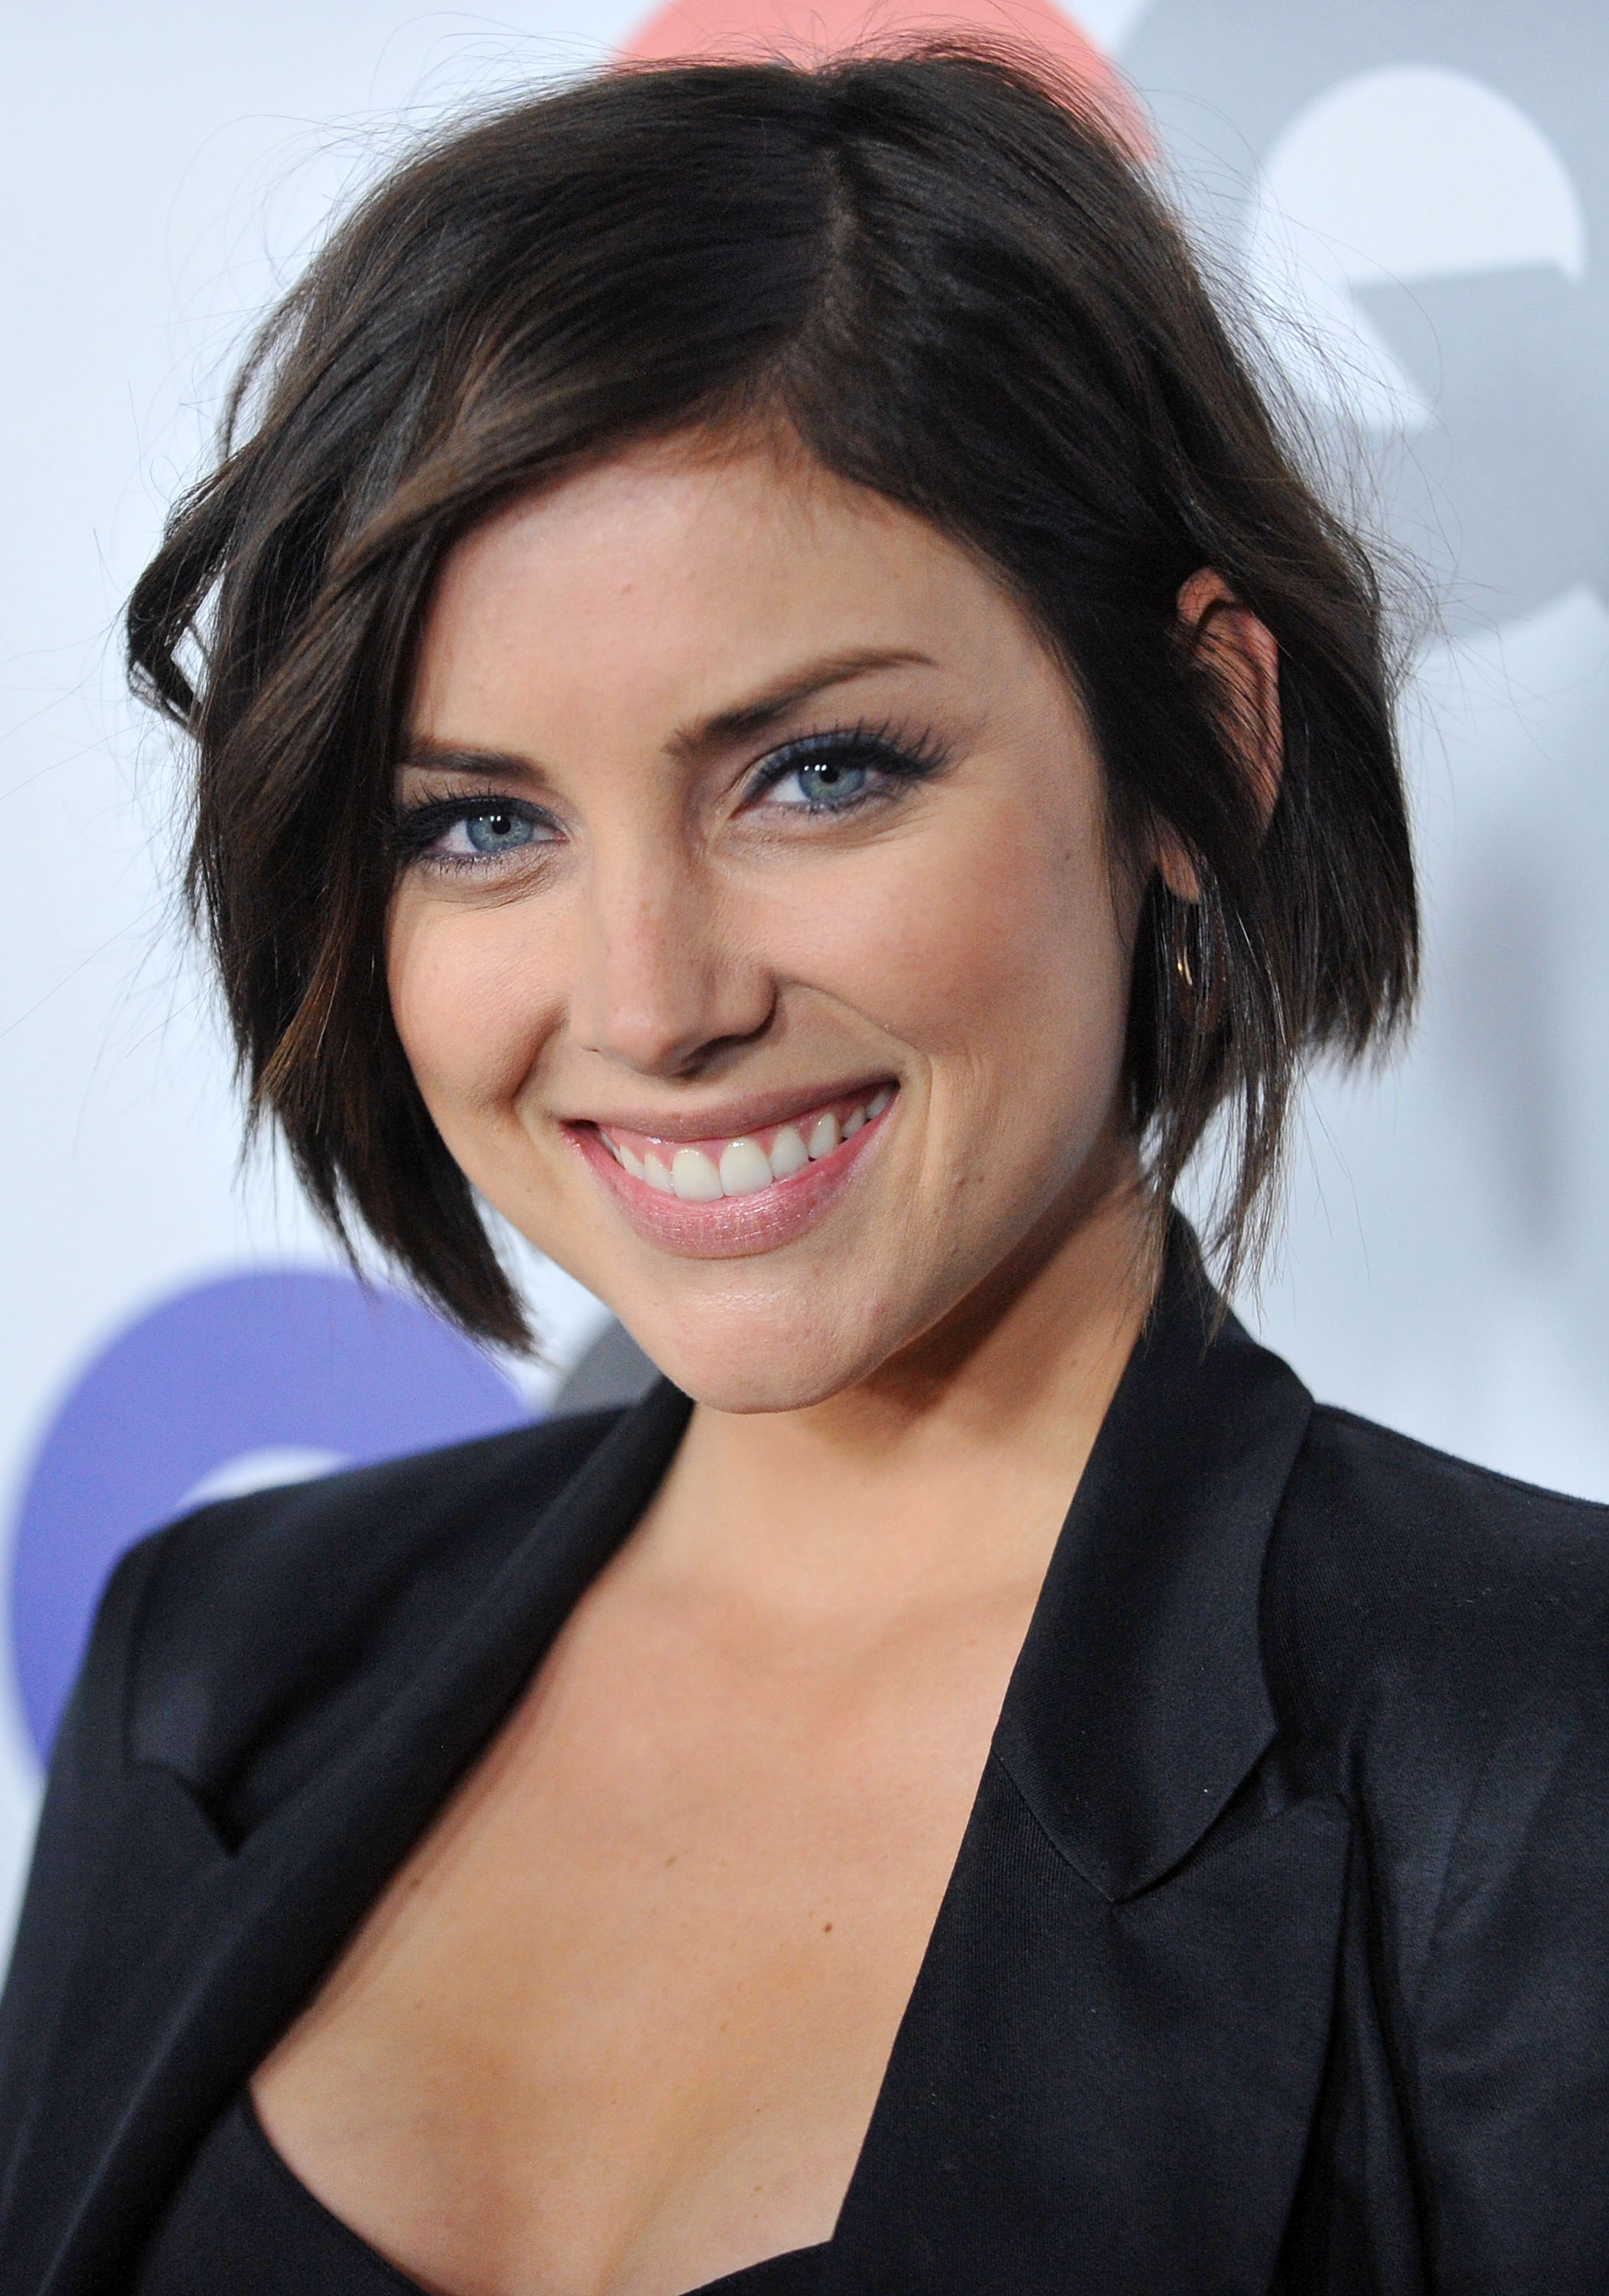 jessica stroup gif huntjessica stroup instagram, jessica stroup gif hunt, jessica stroup tumblr, jessica stroup gif, jessica stroup 2016, jessica stroup 2017, jessica stroup iron fist, jessica stroup -, jessica stroup fansite, jessica stroup bellazon, jessica stroup height, jessica stroup relationship, jessica stroup film, jessica stroup hq, jessica stroup tongue, jessica stroup dog, jessica stroup looks like, jessica stroup wdw, jessica stroup interview, jessica stroup jack reacher